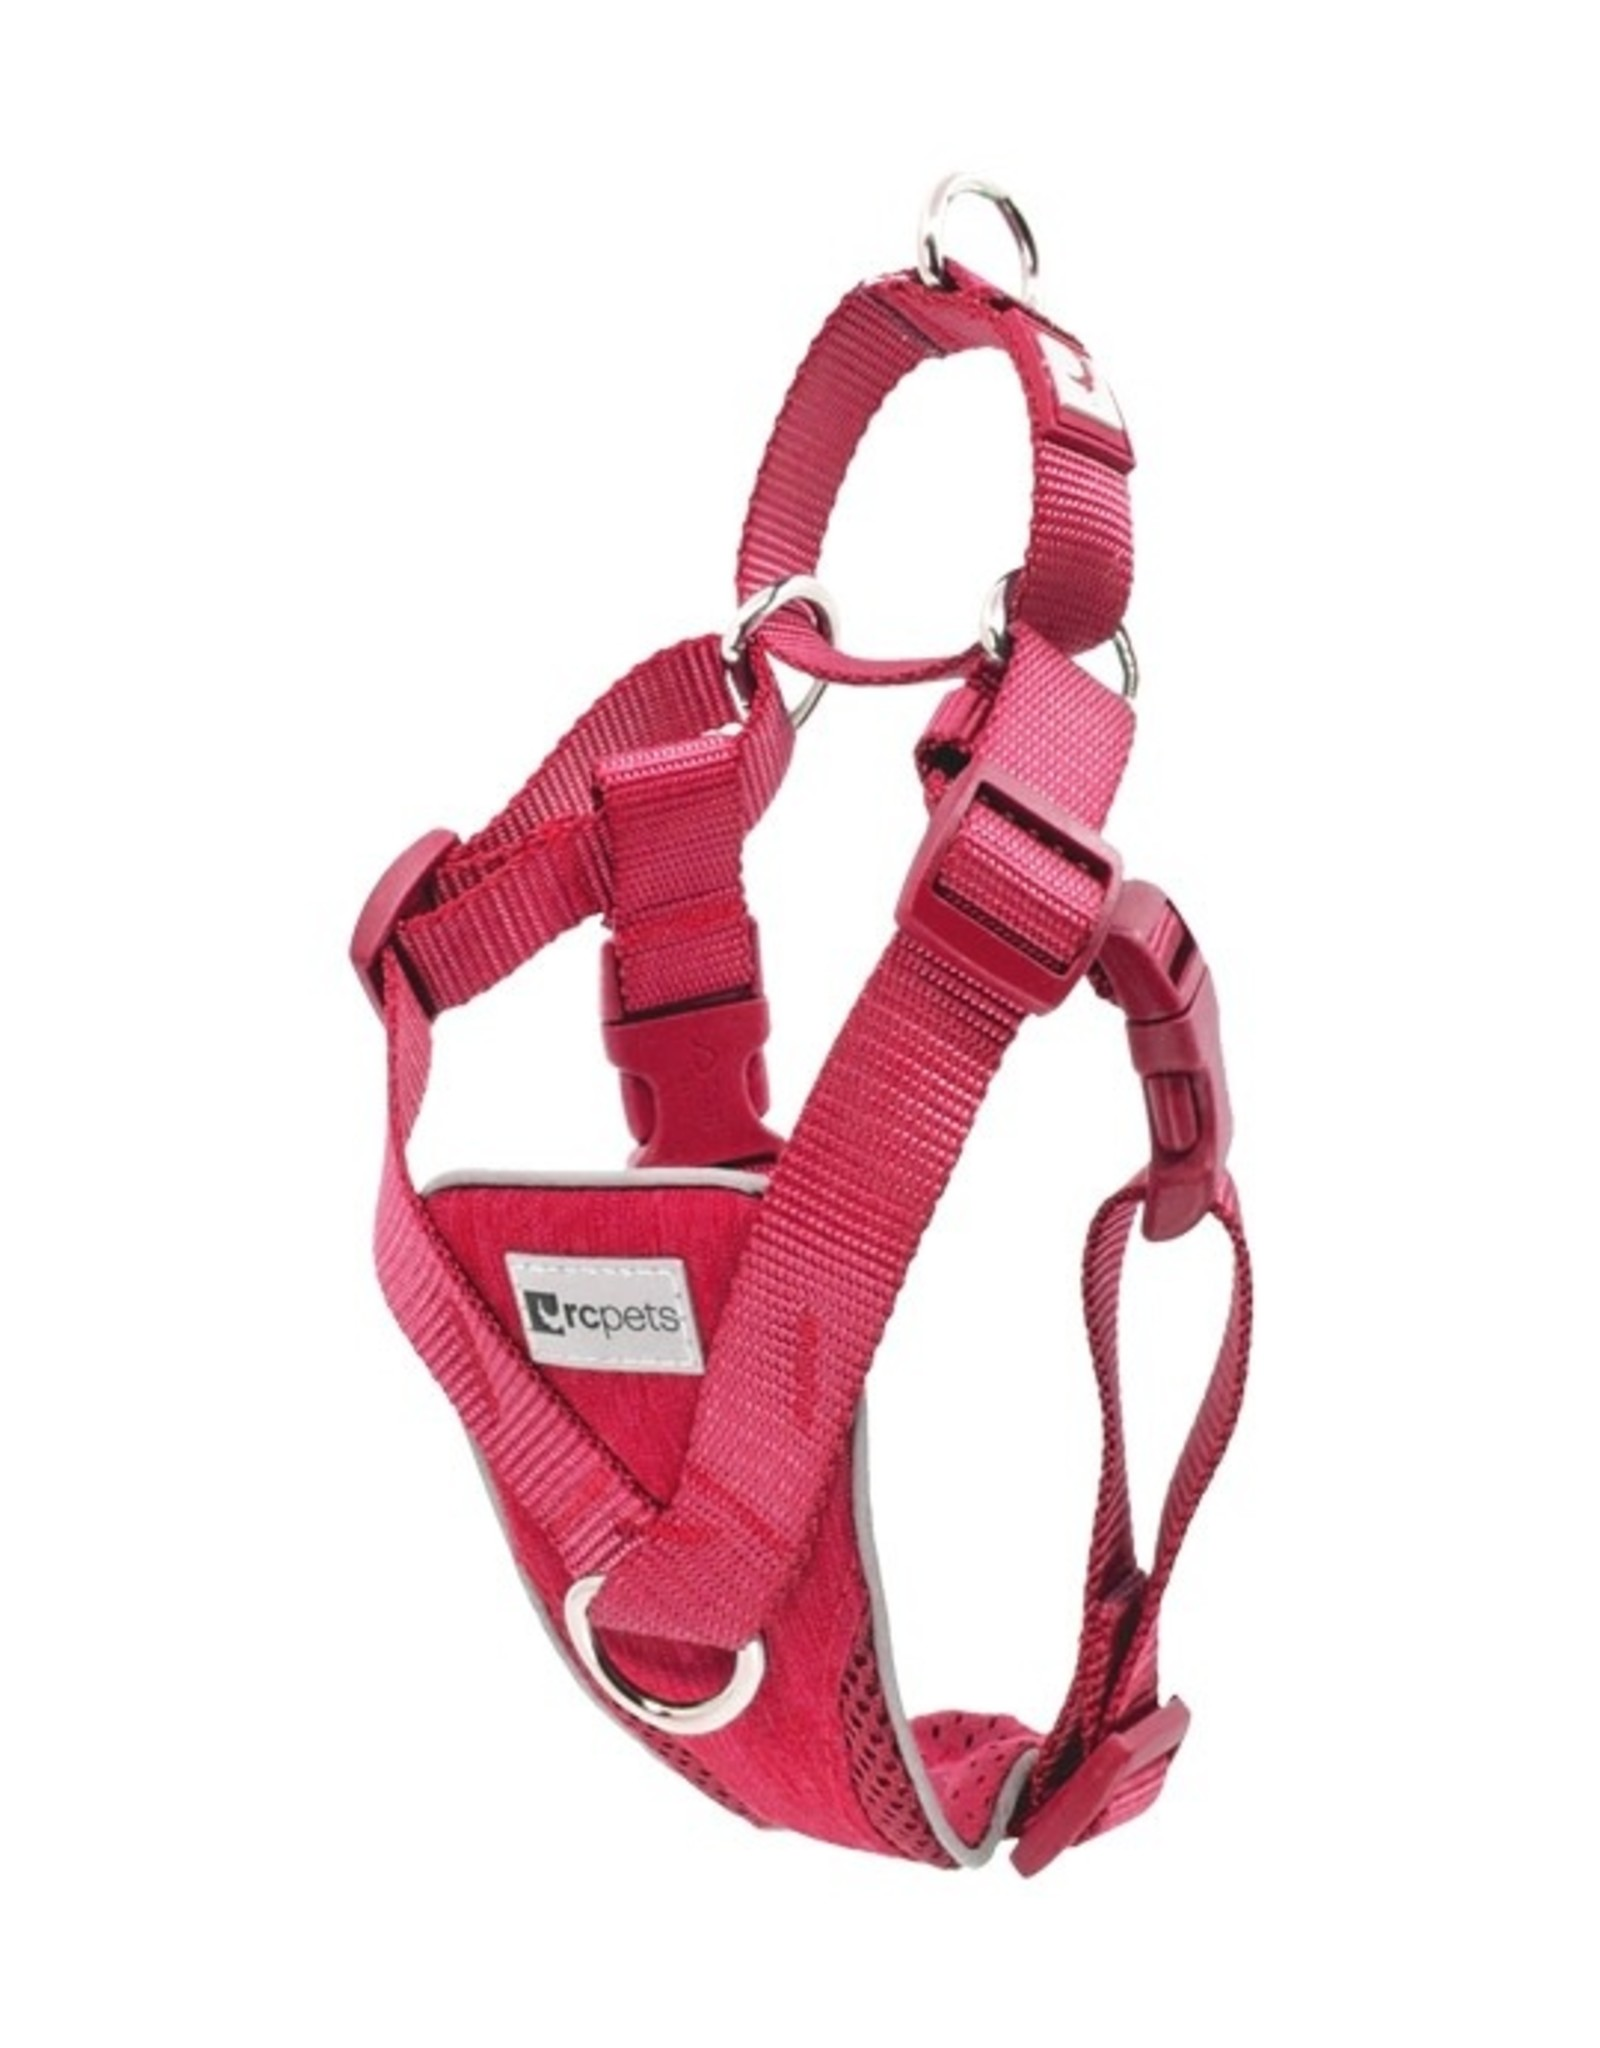 RC PETS RC PETS Tempo No Pull Harness